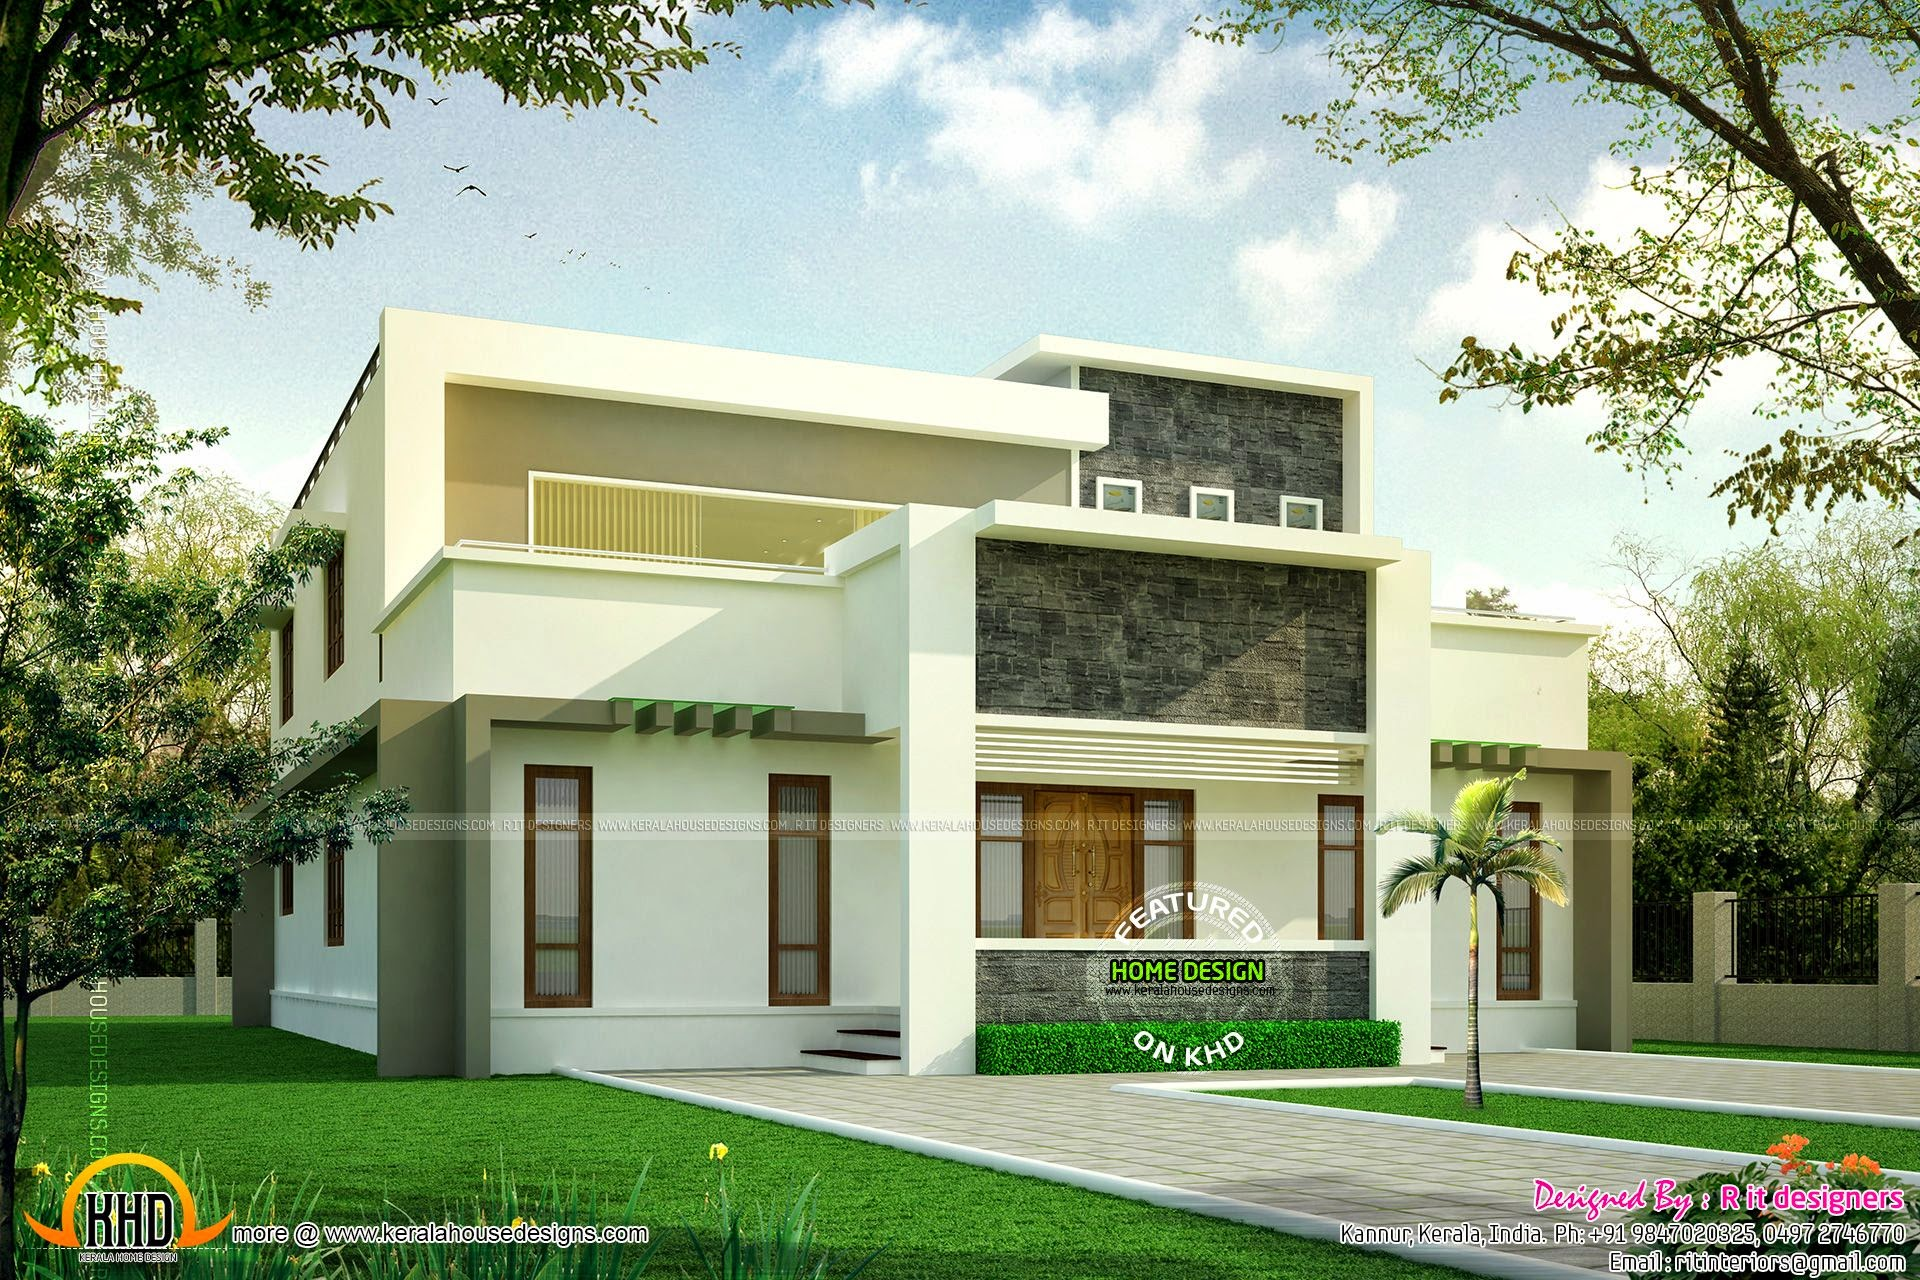 Flat roof home luxury kerala home design and floor plans for Flat roof modern